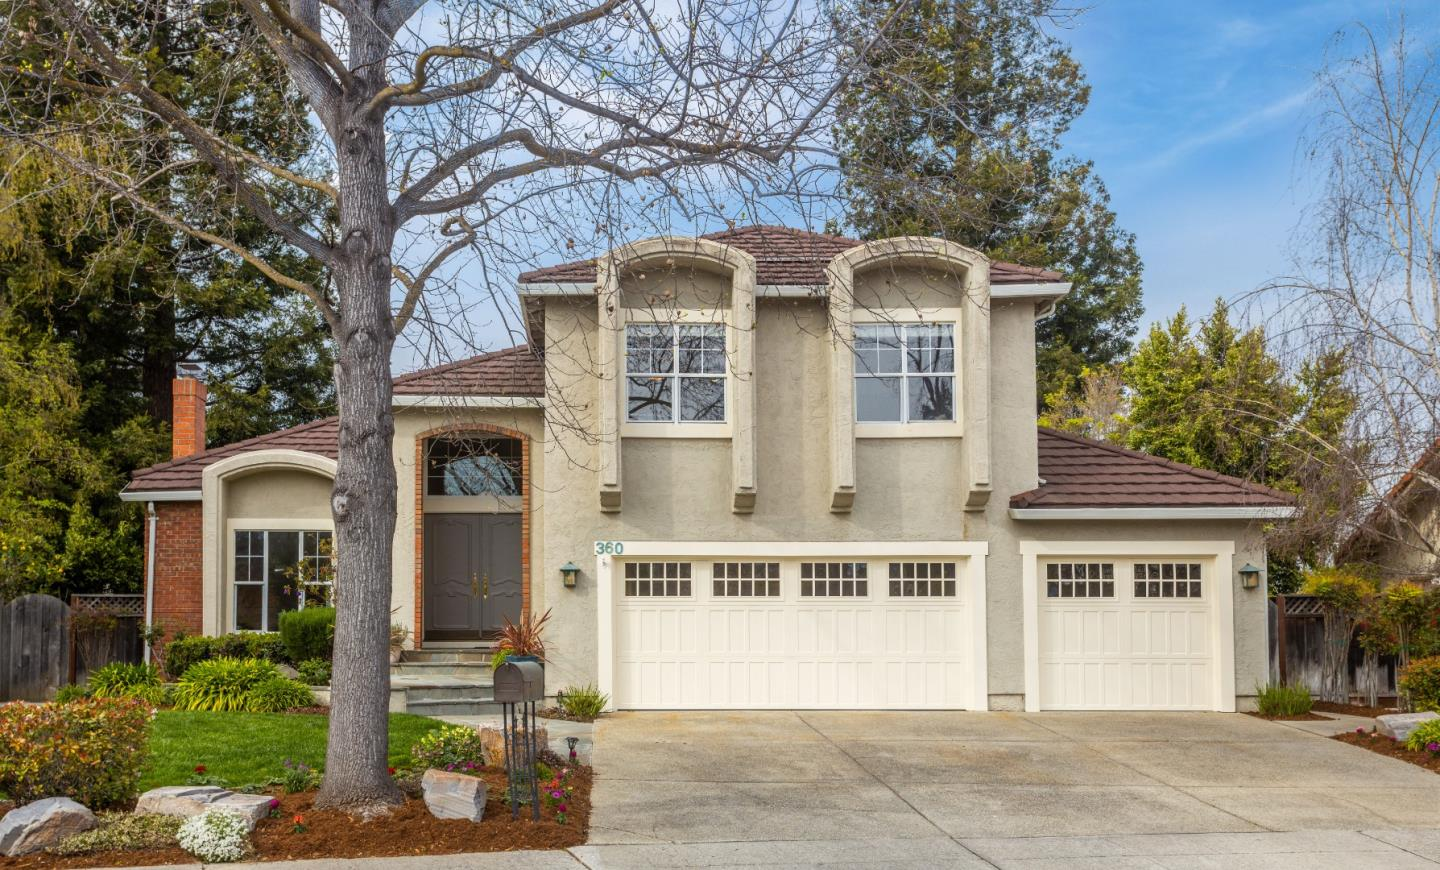 Detail Gallery Image 1 of 25 For 360 Apricot Ln, Mountain View, CA, 94040 - 4 Beds | 2/1 Baths